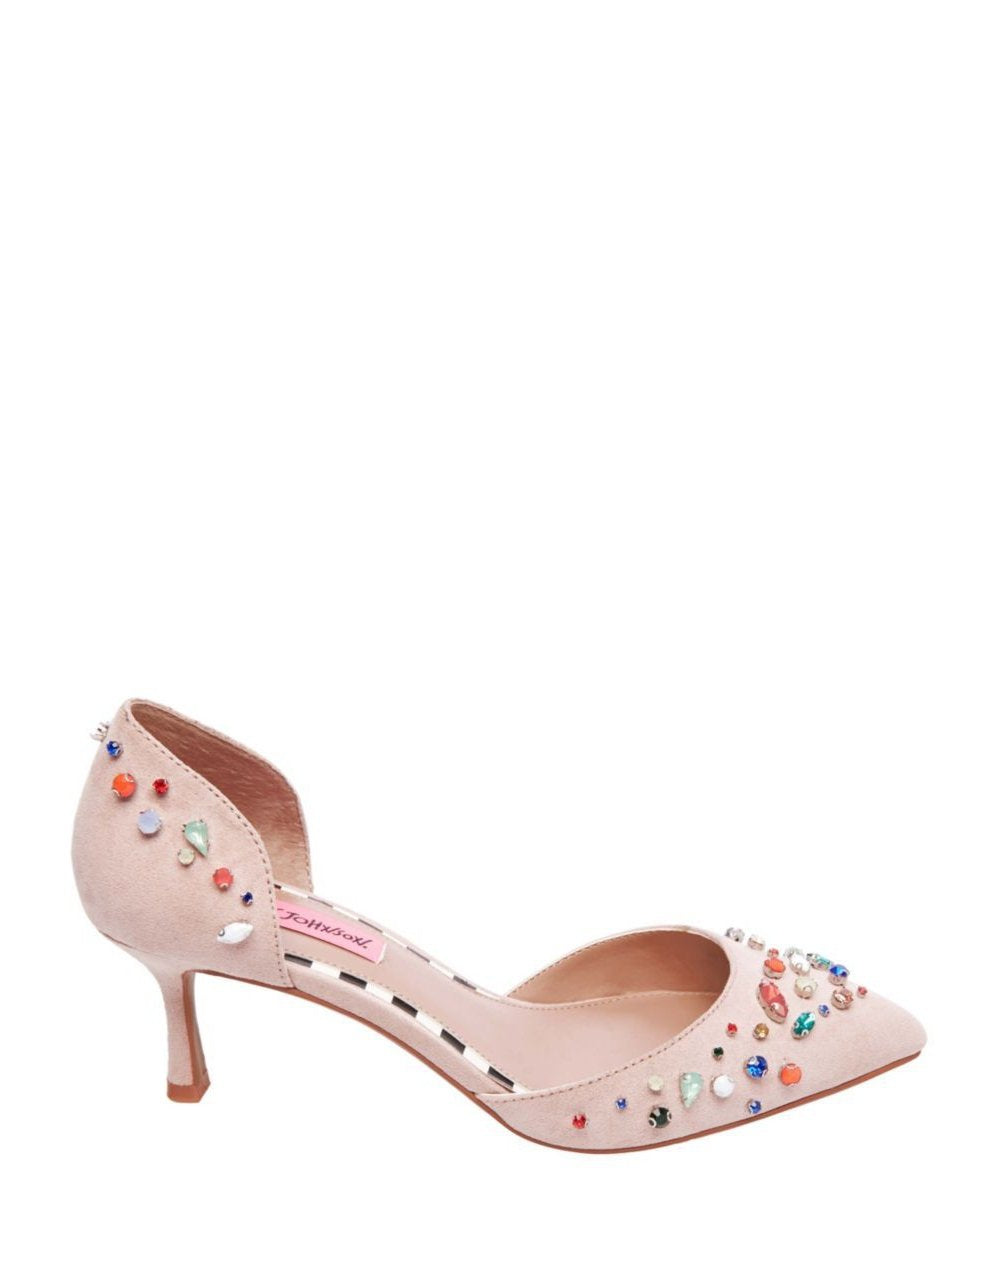 MAX BLUSH - SHOES - Betsey Johnson